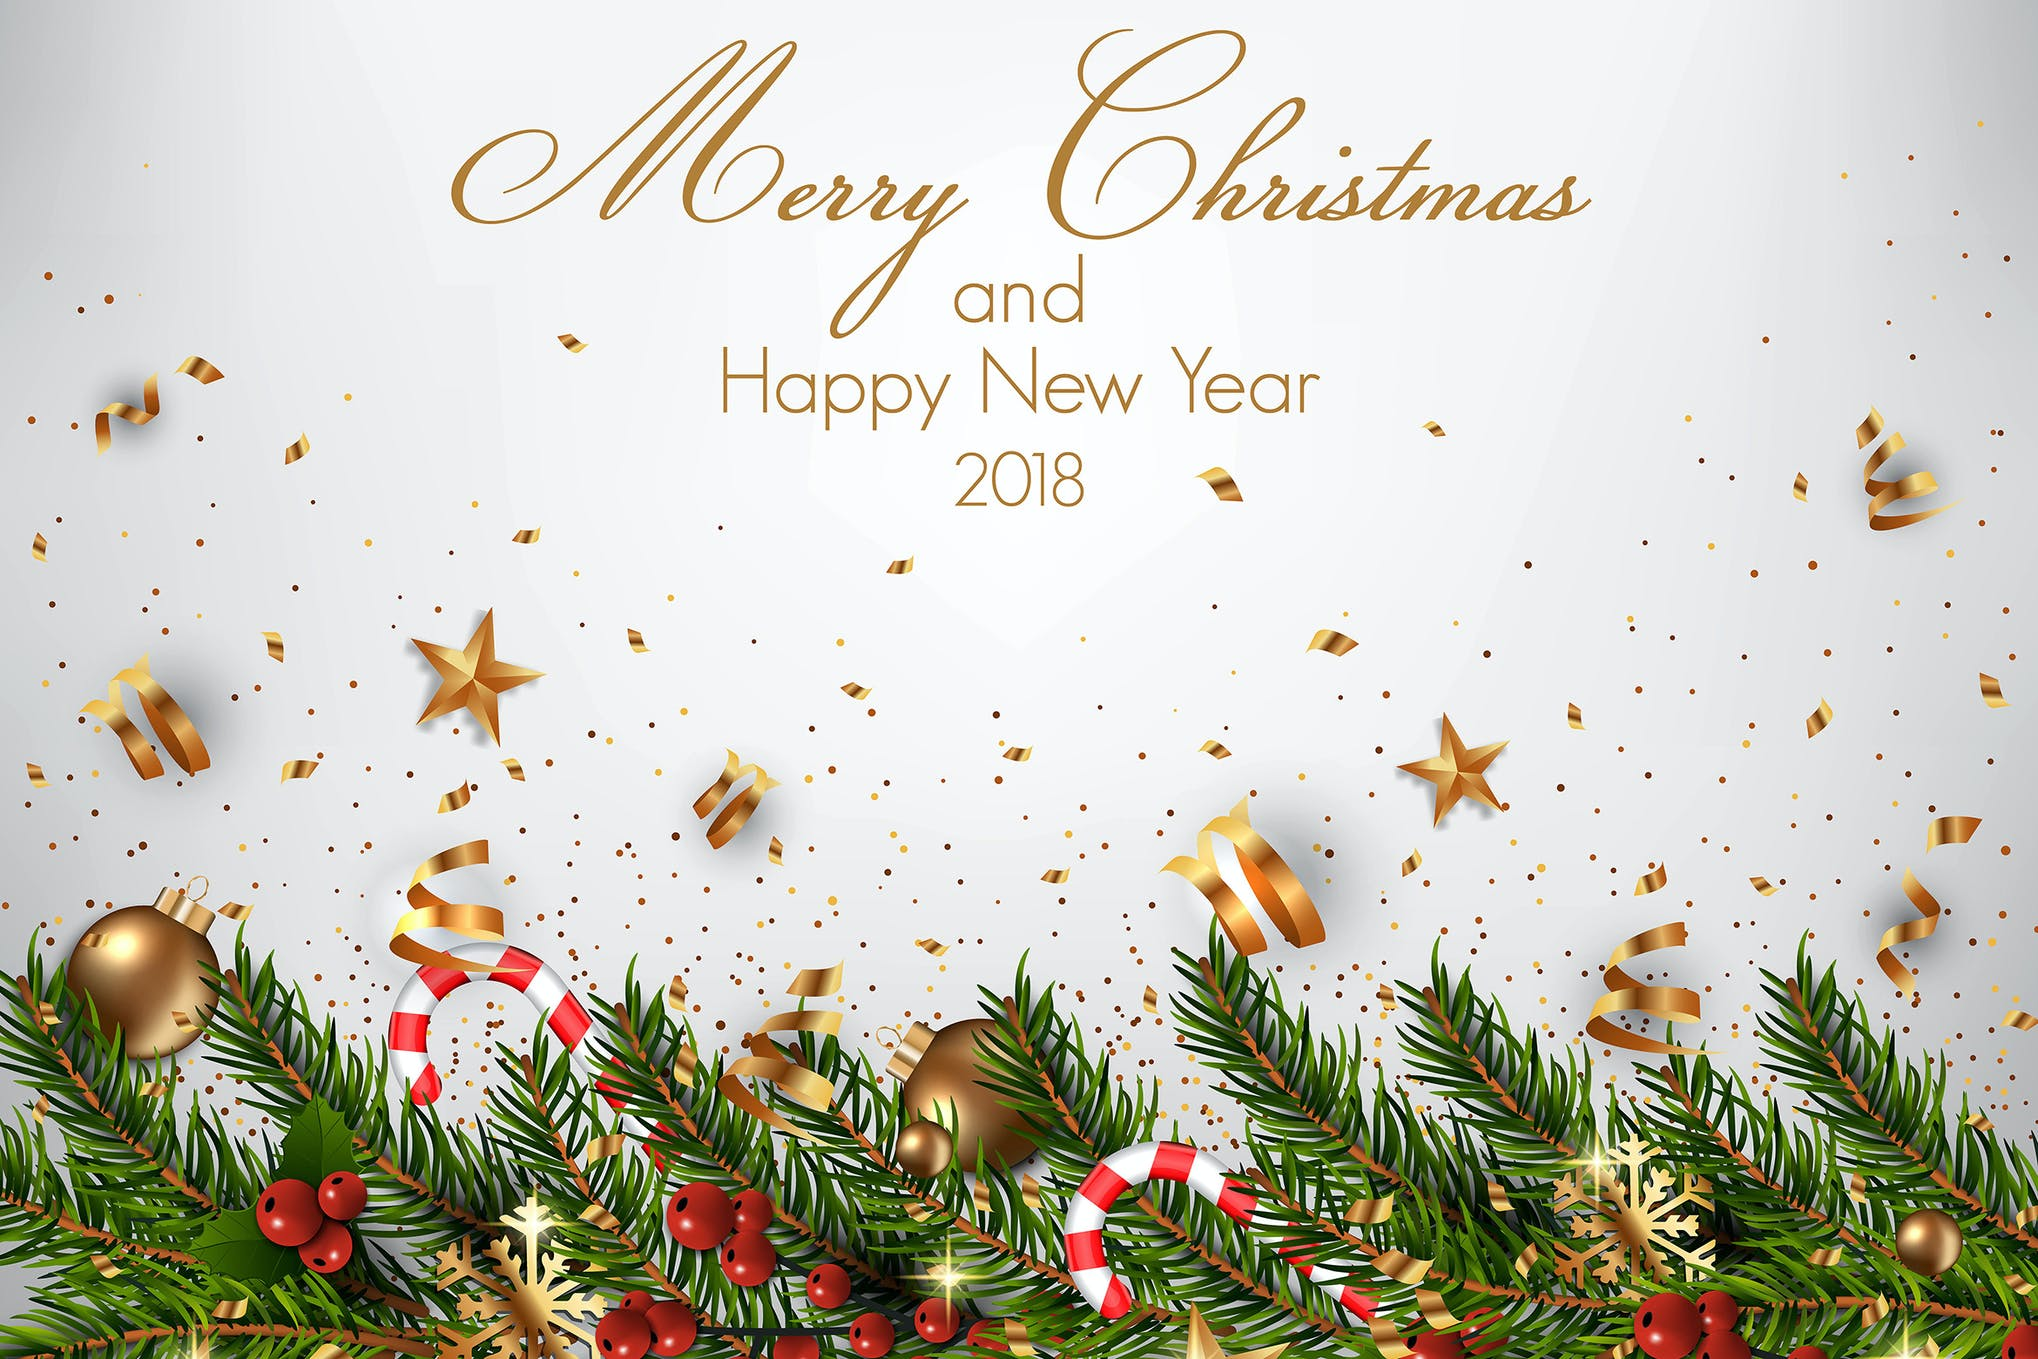 modern merry christmas and happy new year cards by graphics4u on envato elements modern merry christmas and happy new year cards by graphics4u on envato elements